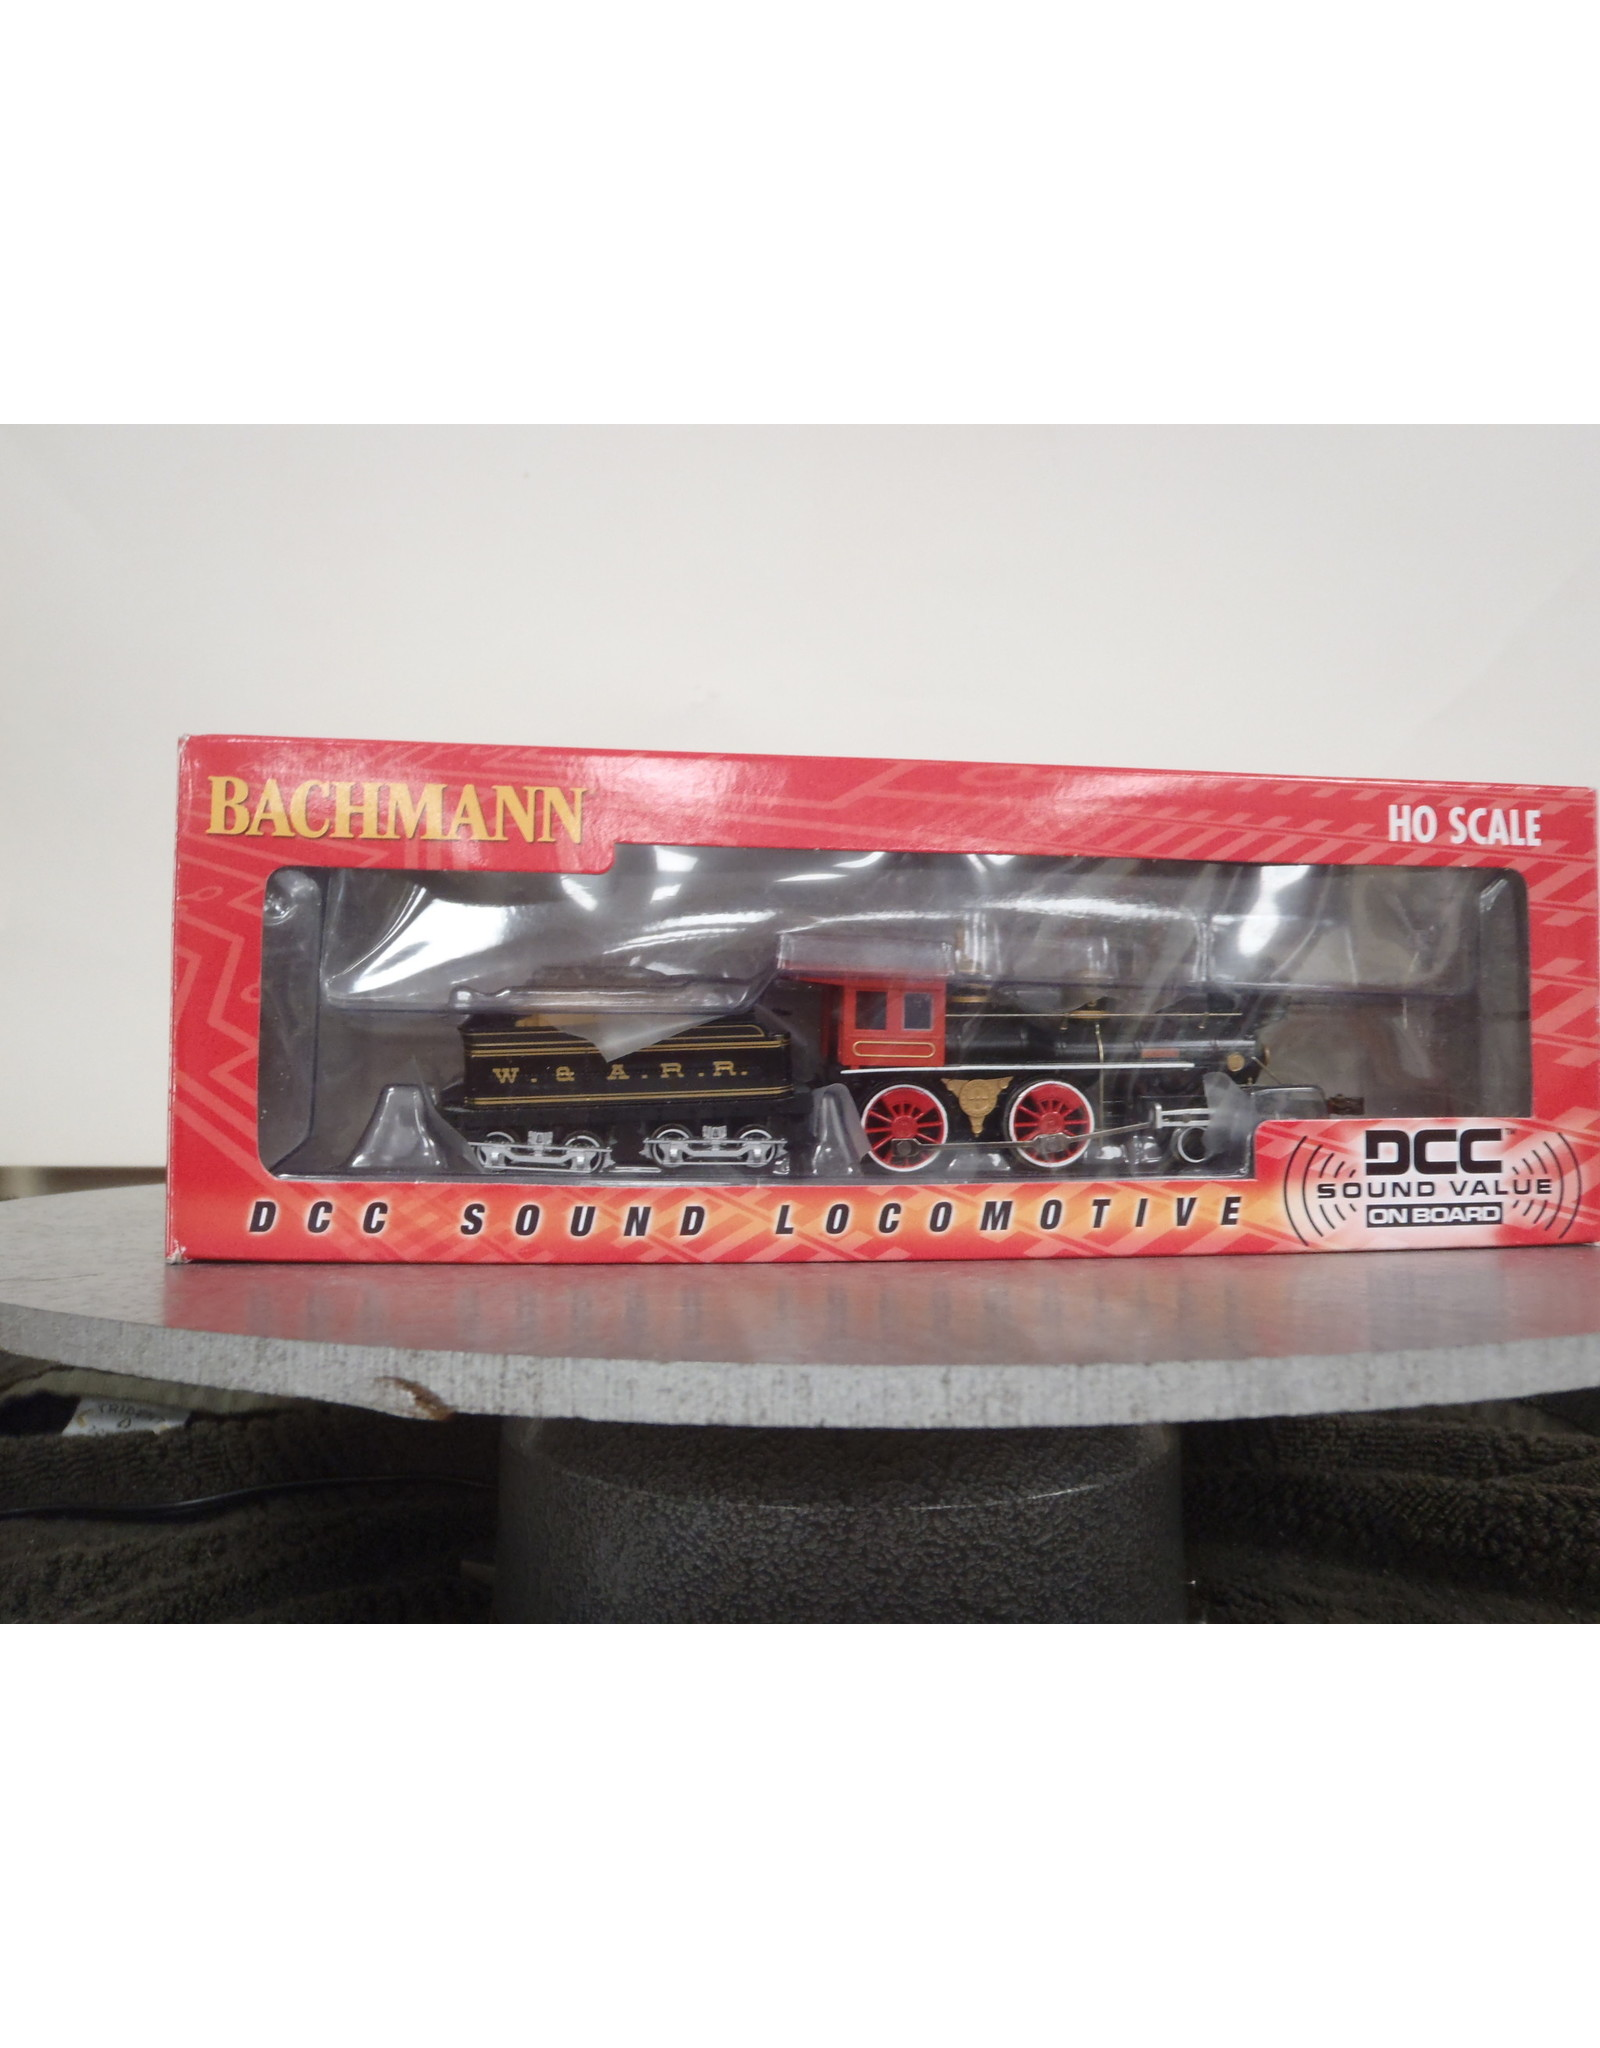 BAC HO 4-4-0 w/DCC & Sound Value, W&ARR/The General